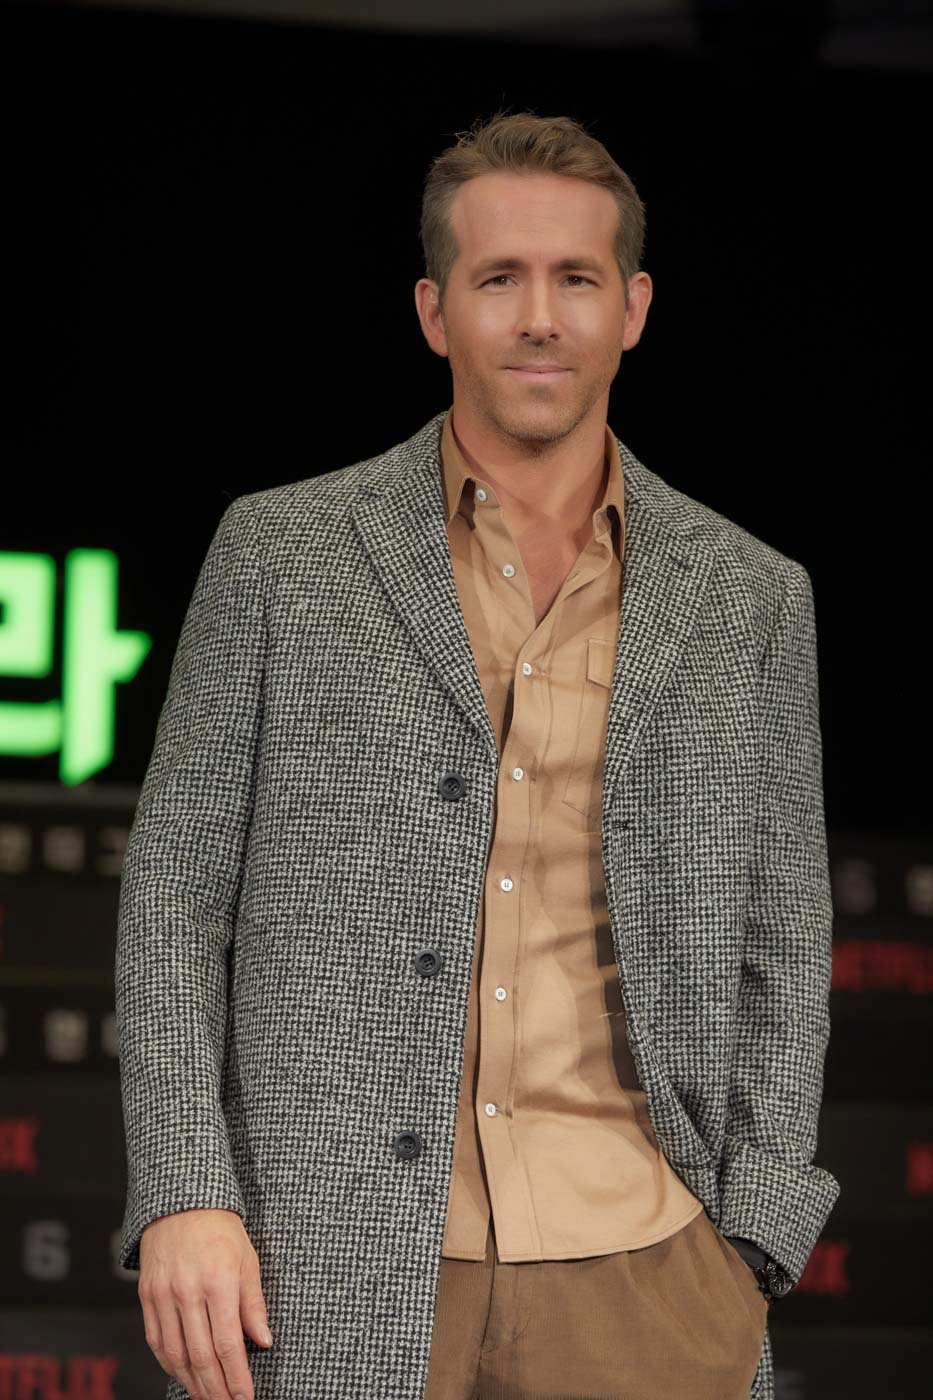 Leader of the band: Ryan Reynolds attends the press conference for the world premiere of Netflix's '6 Underground' at Four Seasons Hotel on December 02, 2019 in Seoul, South Korea. Photo courtesy of Netflix